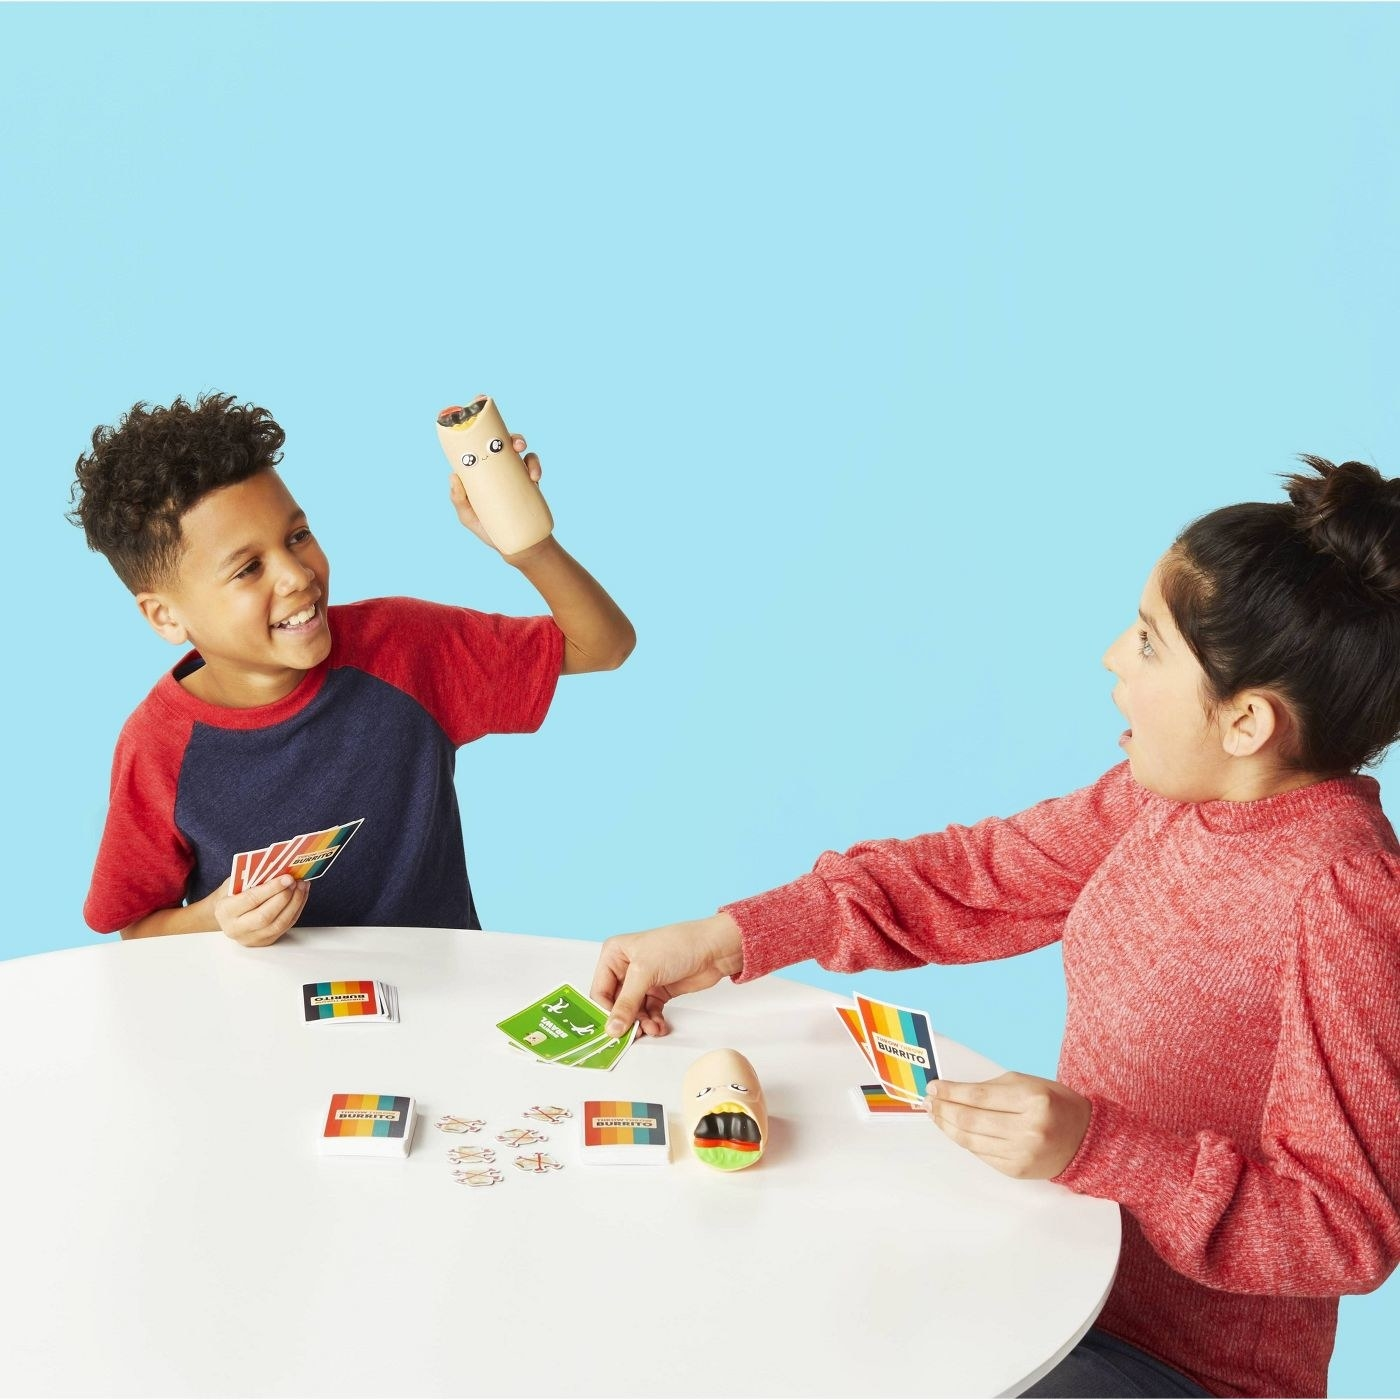 Children throwing a burrito plush toy while using the deck of cards